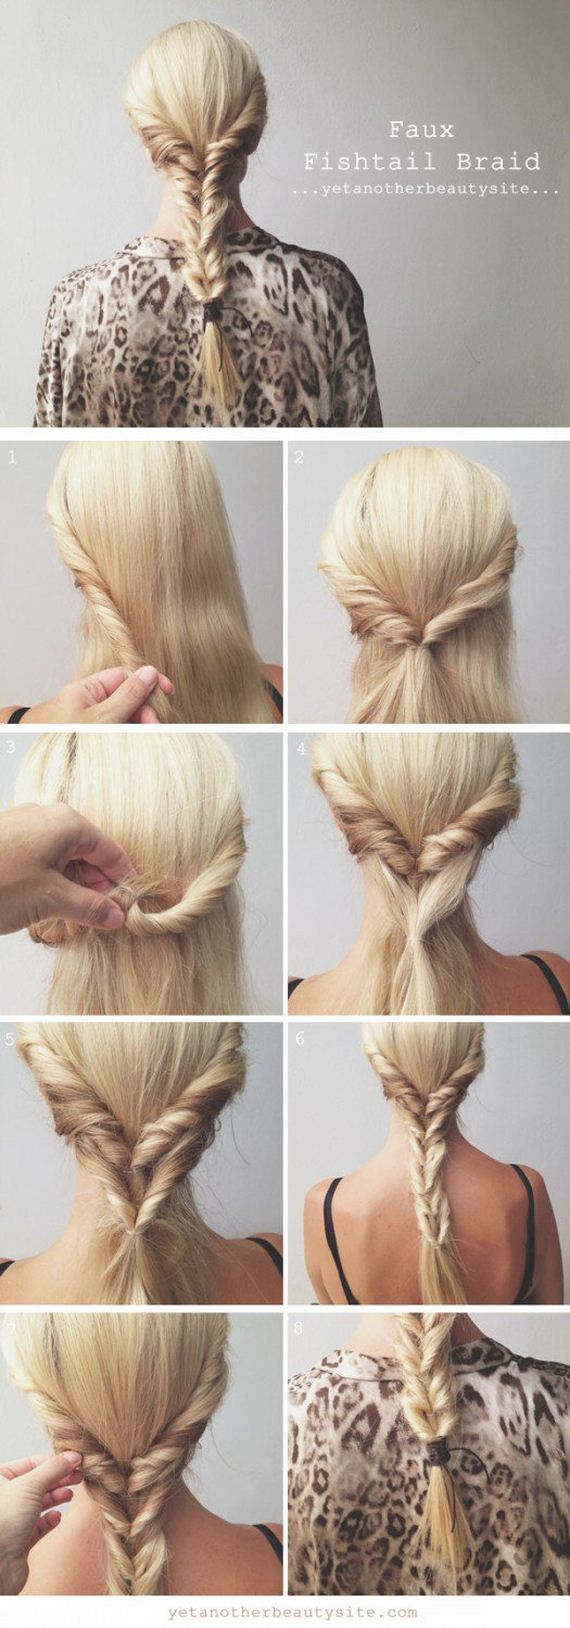 14-DIY-Hairstyles-for-Long-Hair